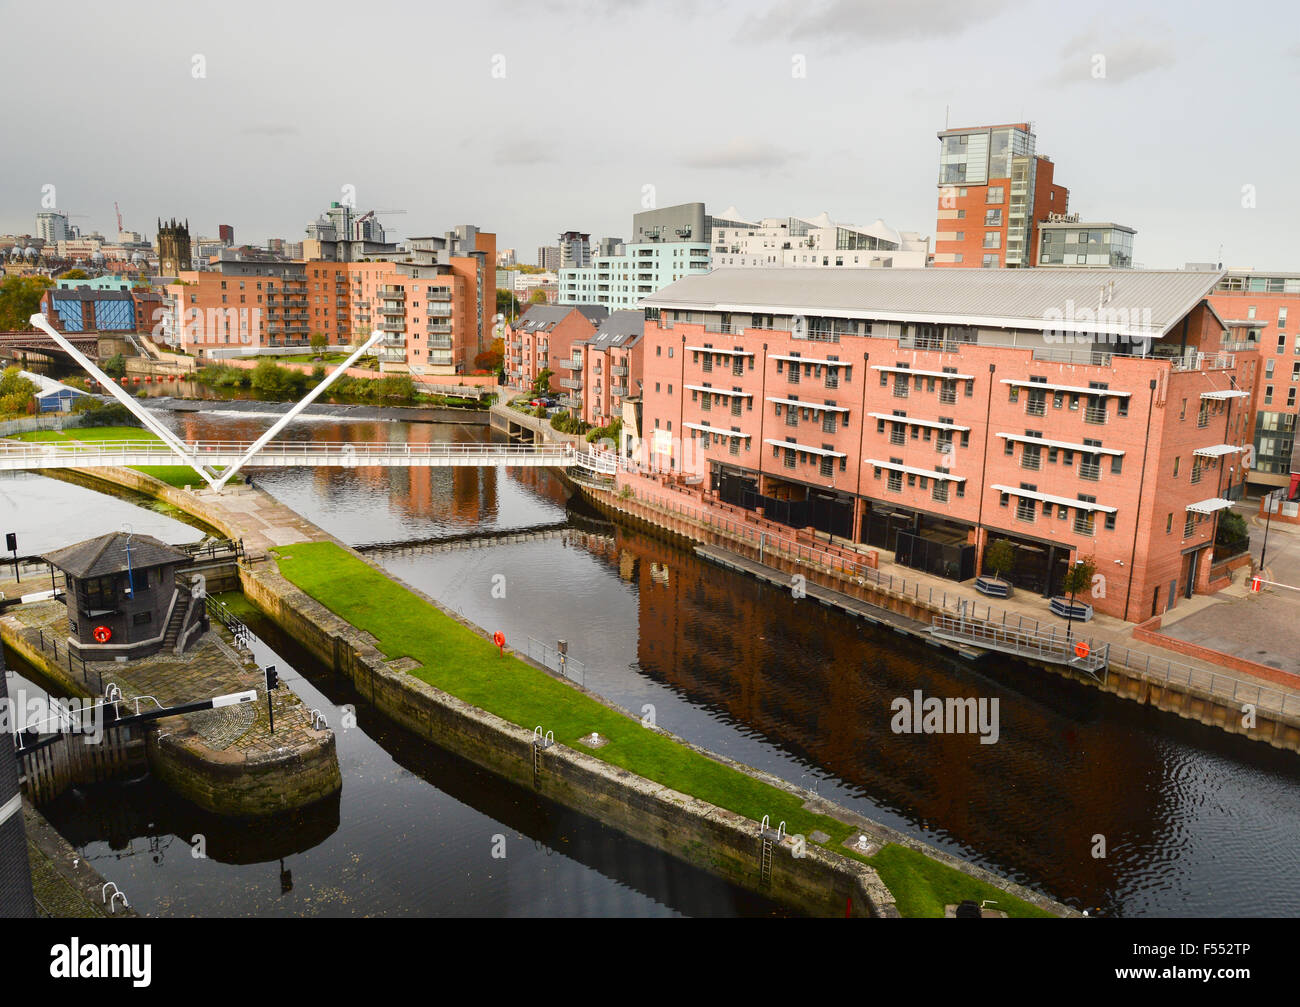 The River Aire and lock which allows access to Leeds Dock - Stock Image